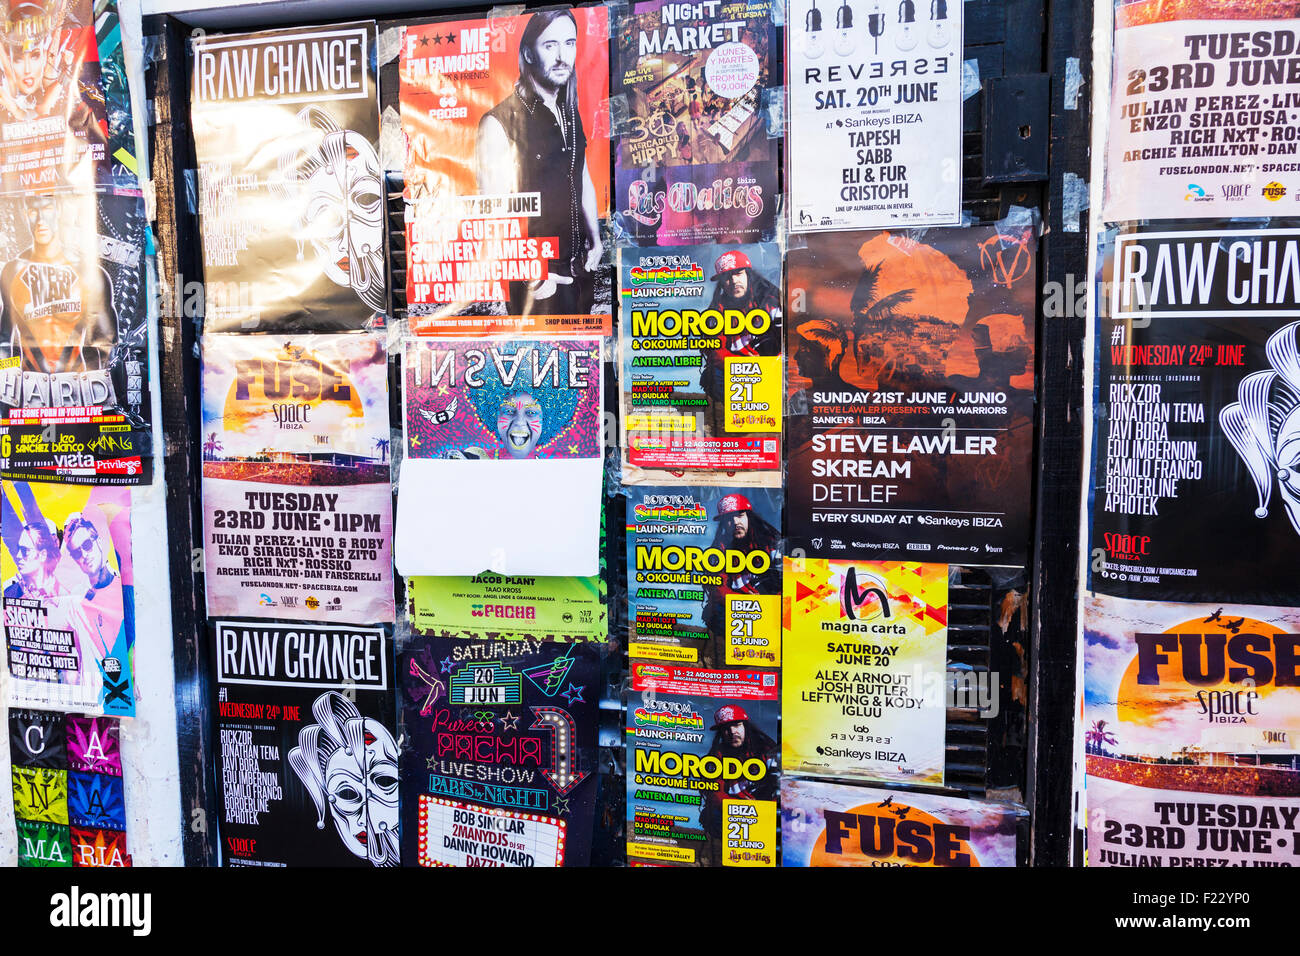 posters stuck on wall advertising bill posting adverts Ibiza clubs concerts events advertised - Stock Image